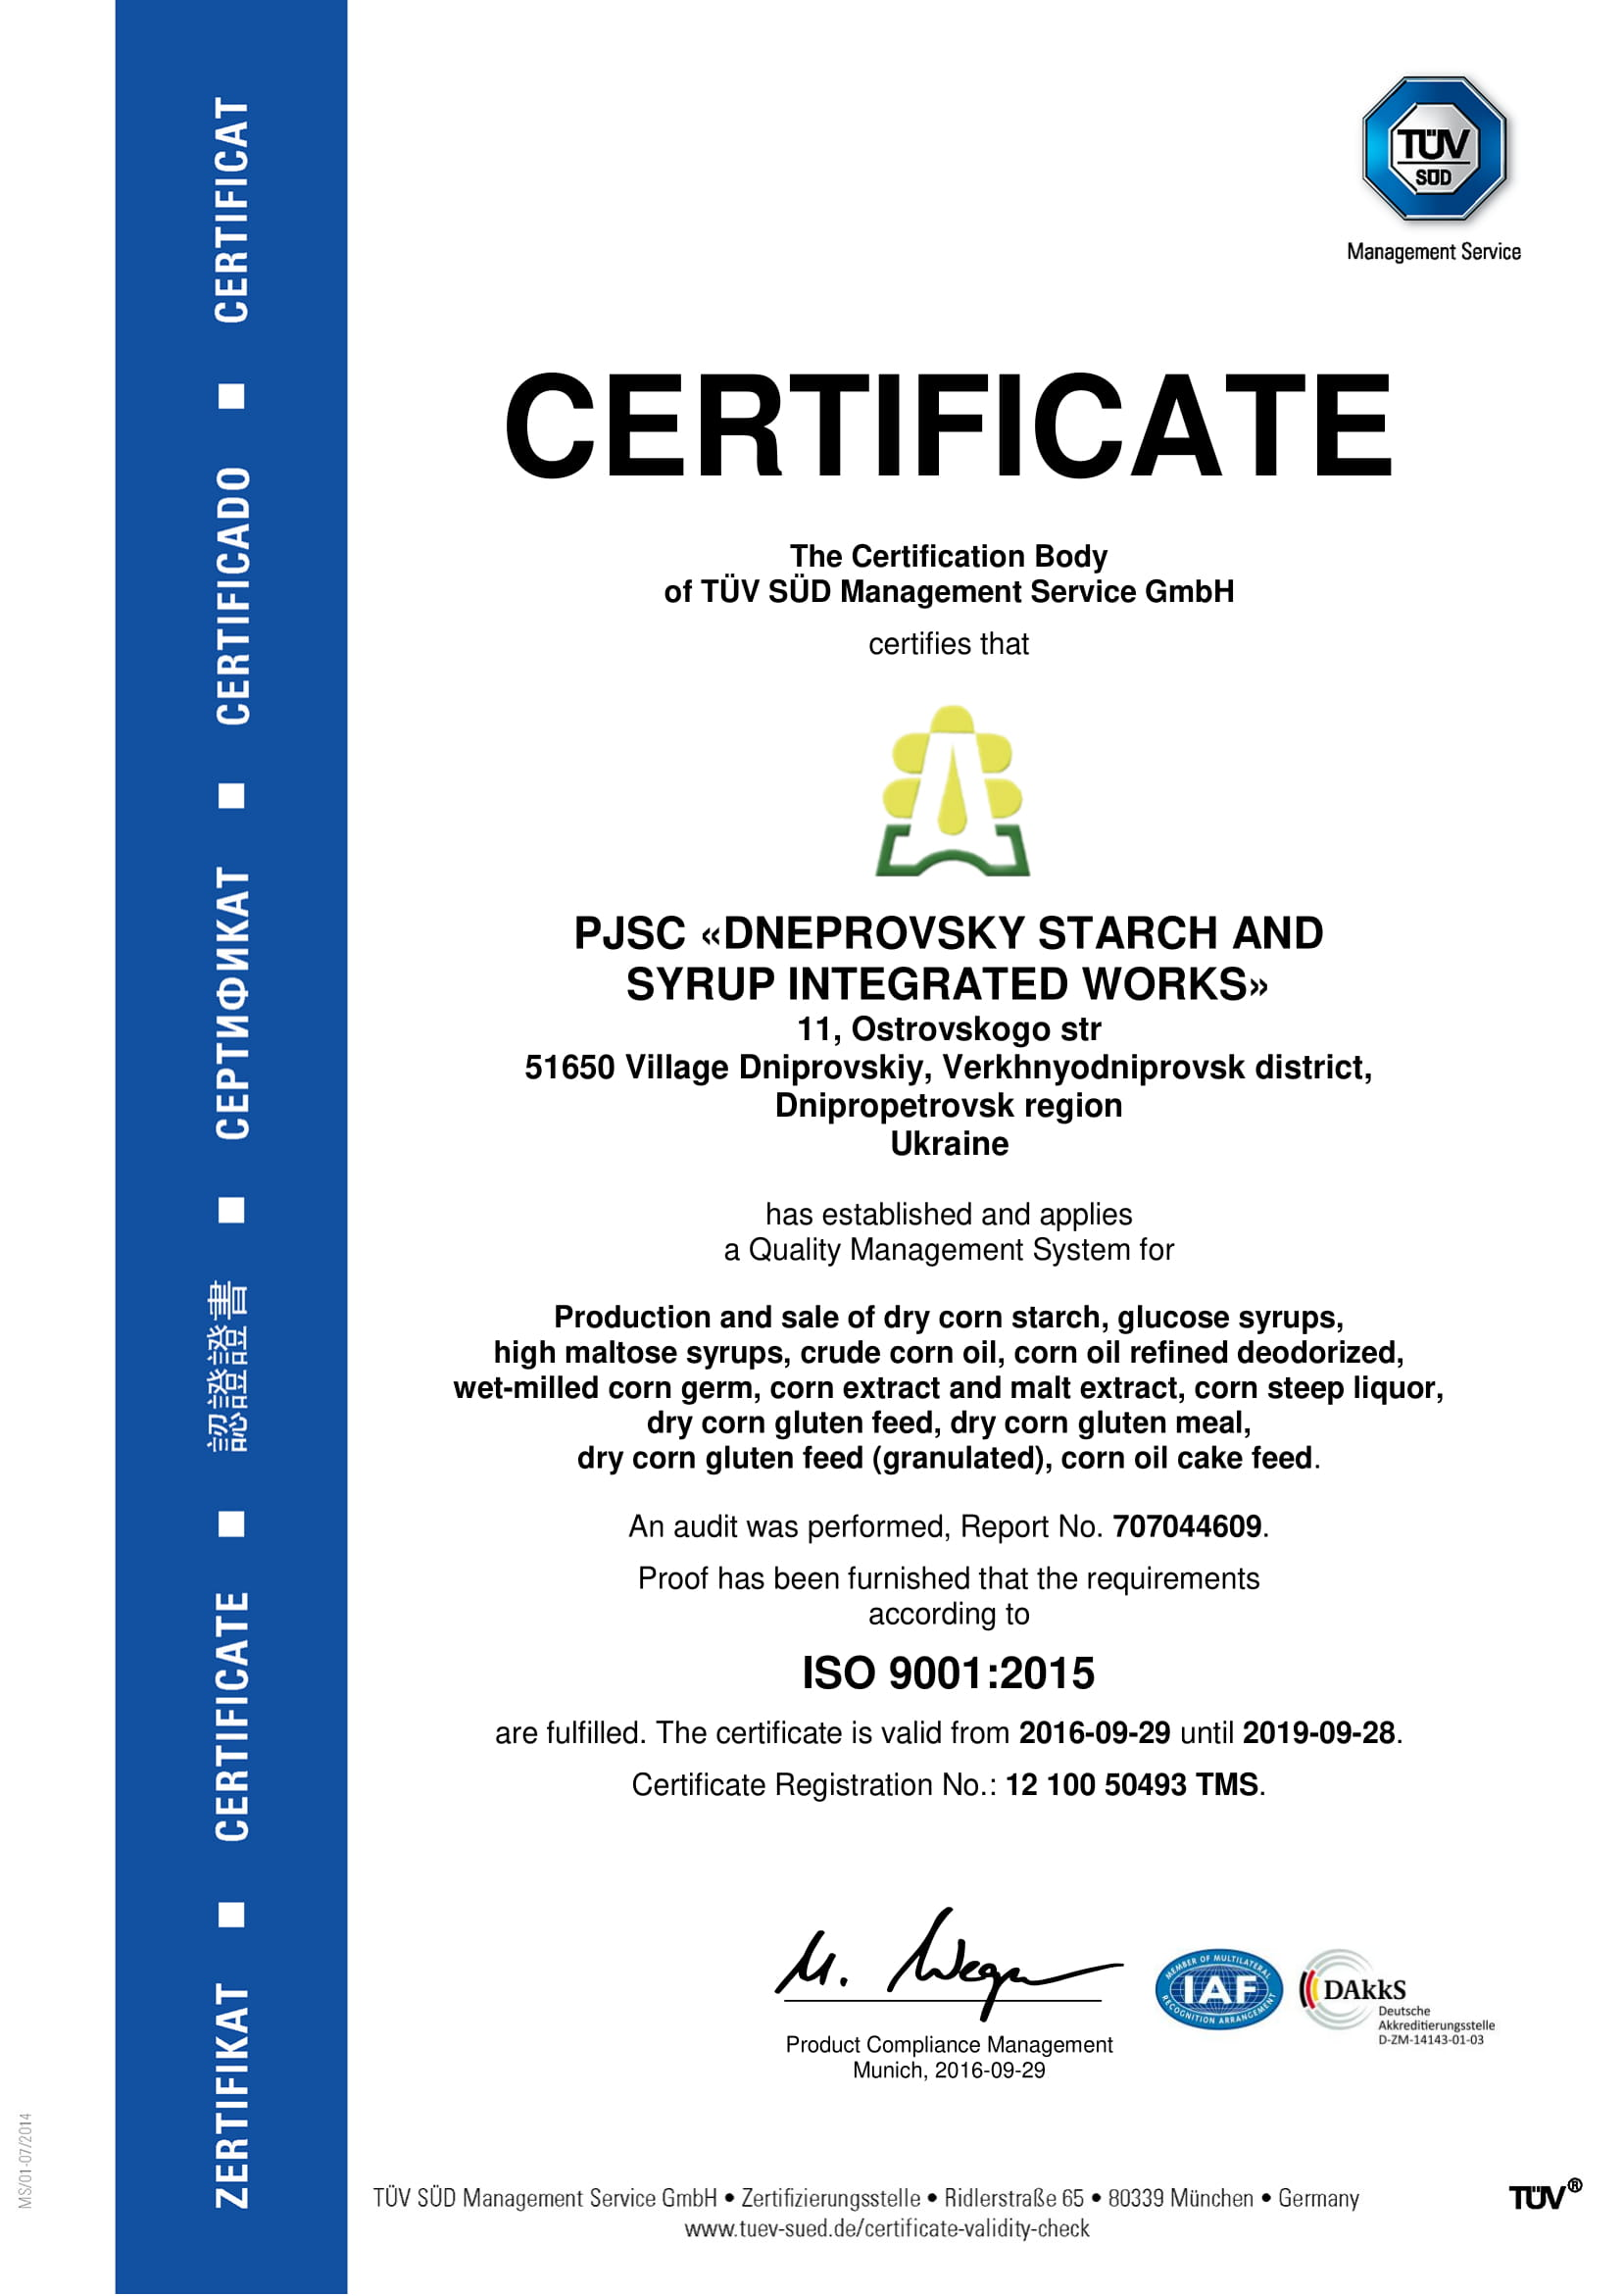 ISO 9001 PrJSC Dneprovsky starch and syrups integrated works